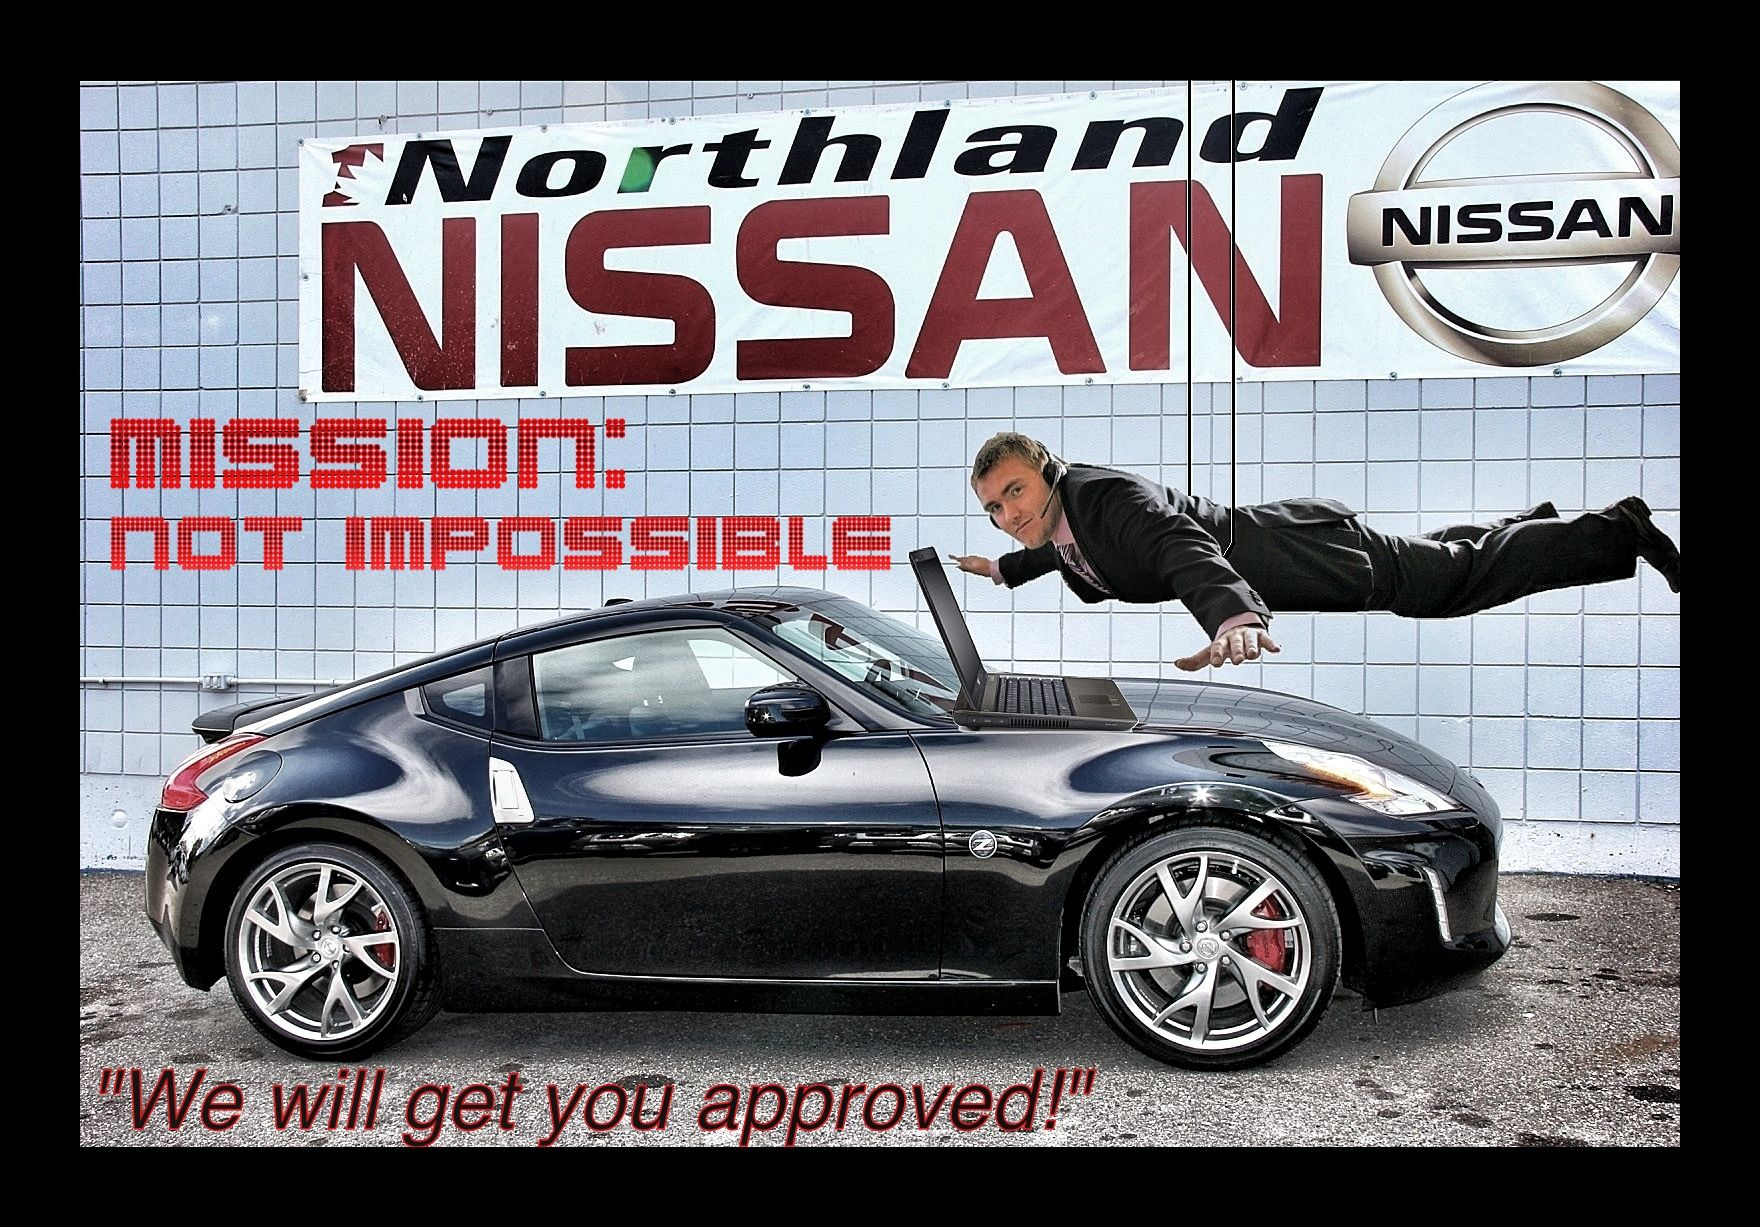 mission not impossible we will get you approved northland nissan more fun with move posters nissan northland mission pinterest